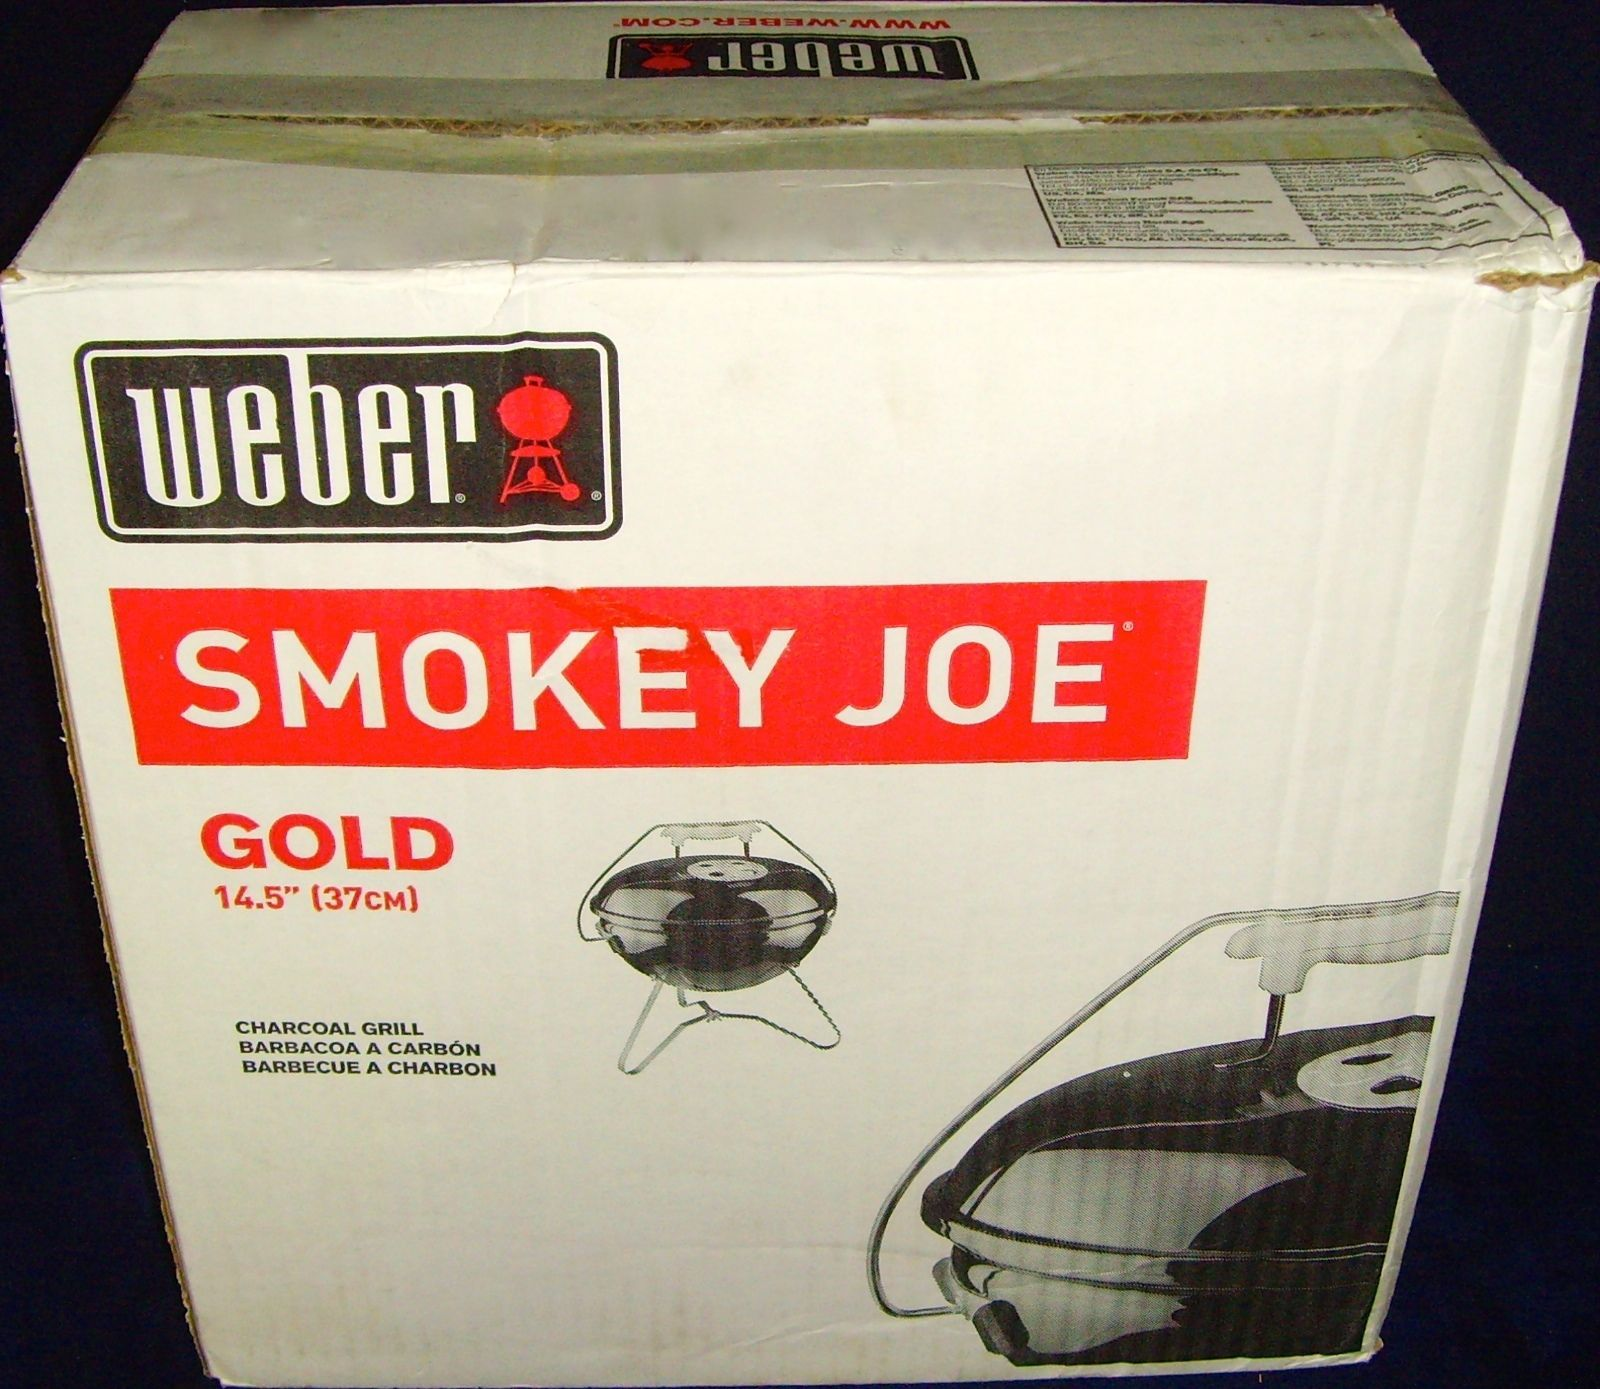 new in box weber smokey joe gold charcoal grill 14 5 model 40020 black resealed barbecues. Black Bedroom Furniture Sets. Home Design Ideas